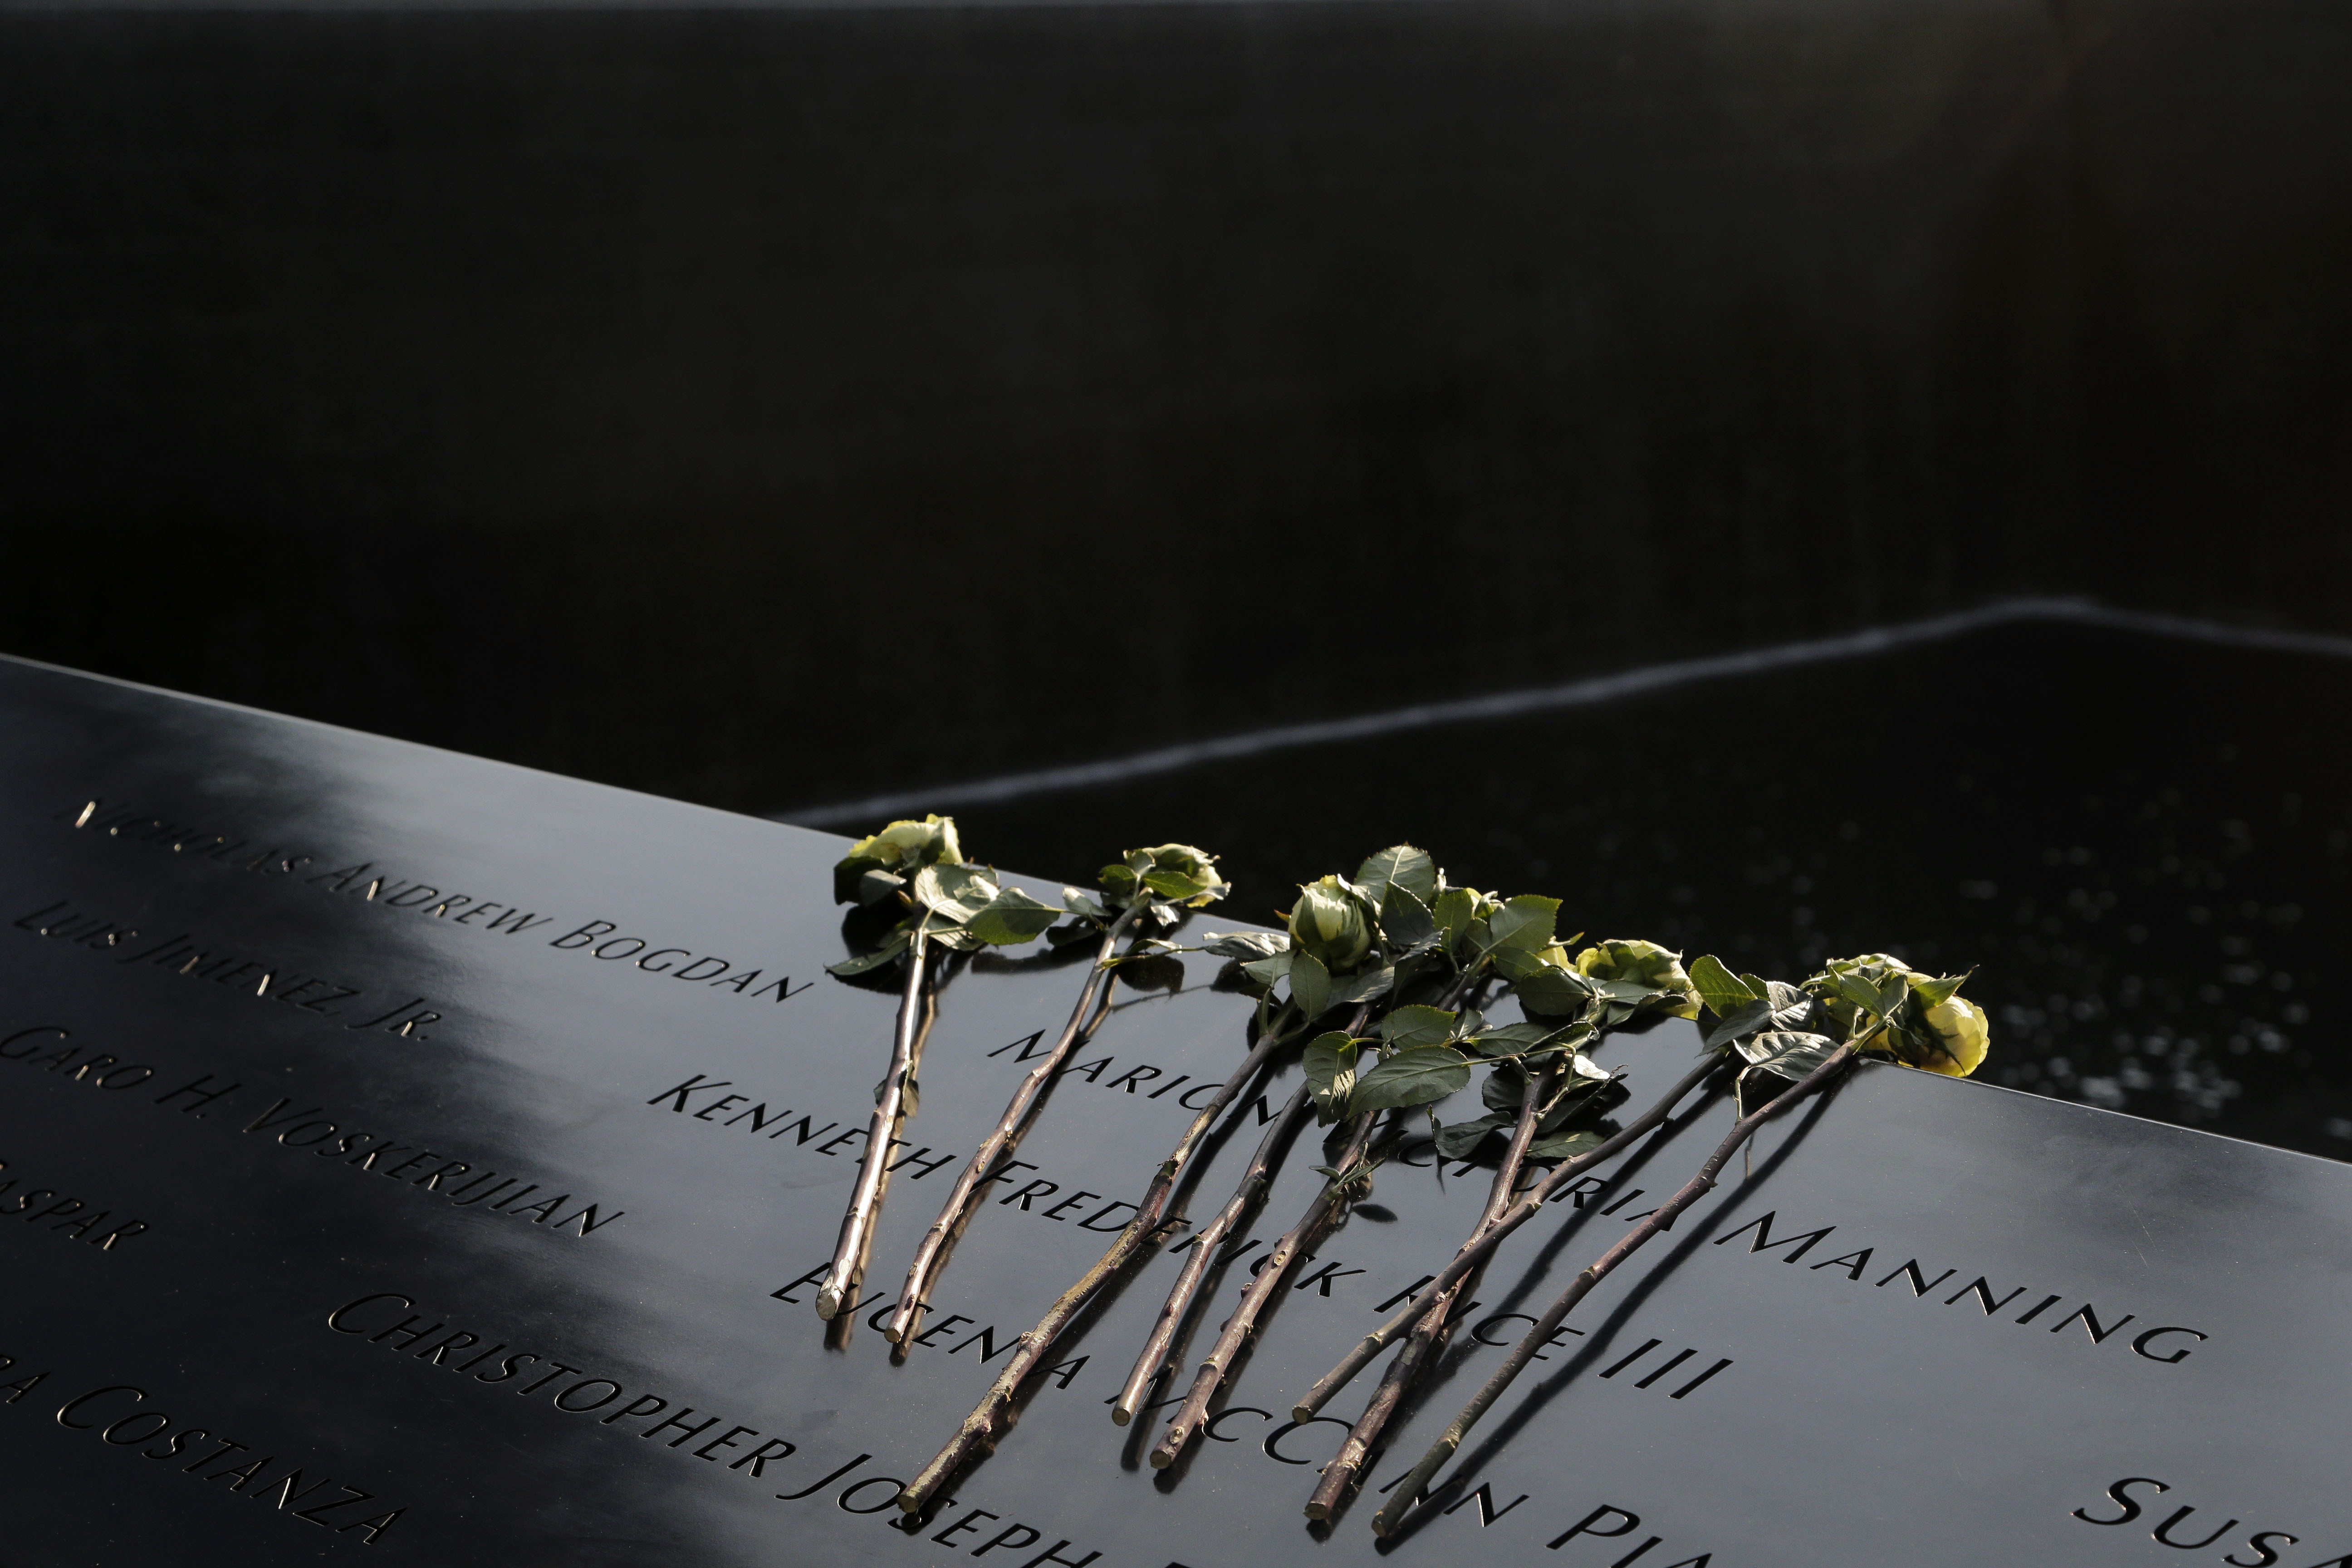 "<div class=""meta image-caption""><div class=""origin-logo origin-image none""><span>none</span></div><span class=""caption-text"">Flowers lay over the names of the victims of the 9/11 terrorist attacks before a ceremony at ground zero in New York, Monday, Sept. 11, 2017. (AP Photo/Seth Wenig)</span></div>"